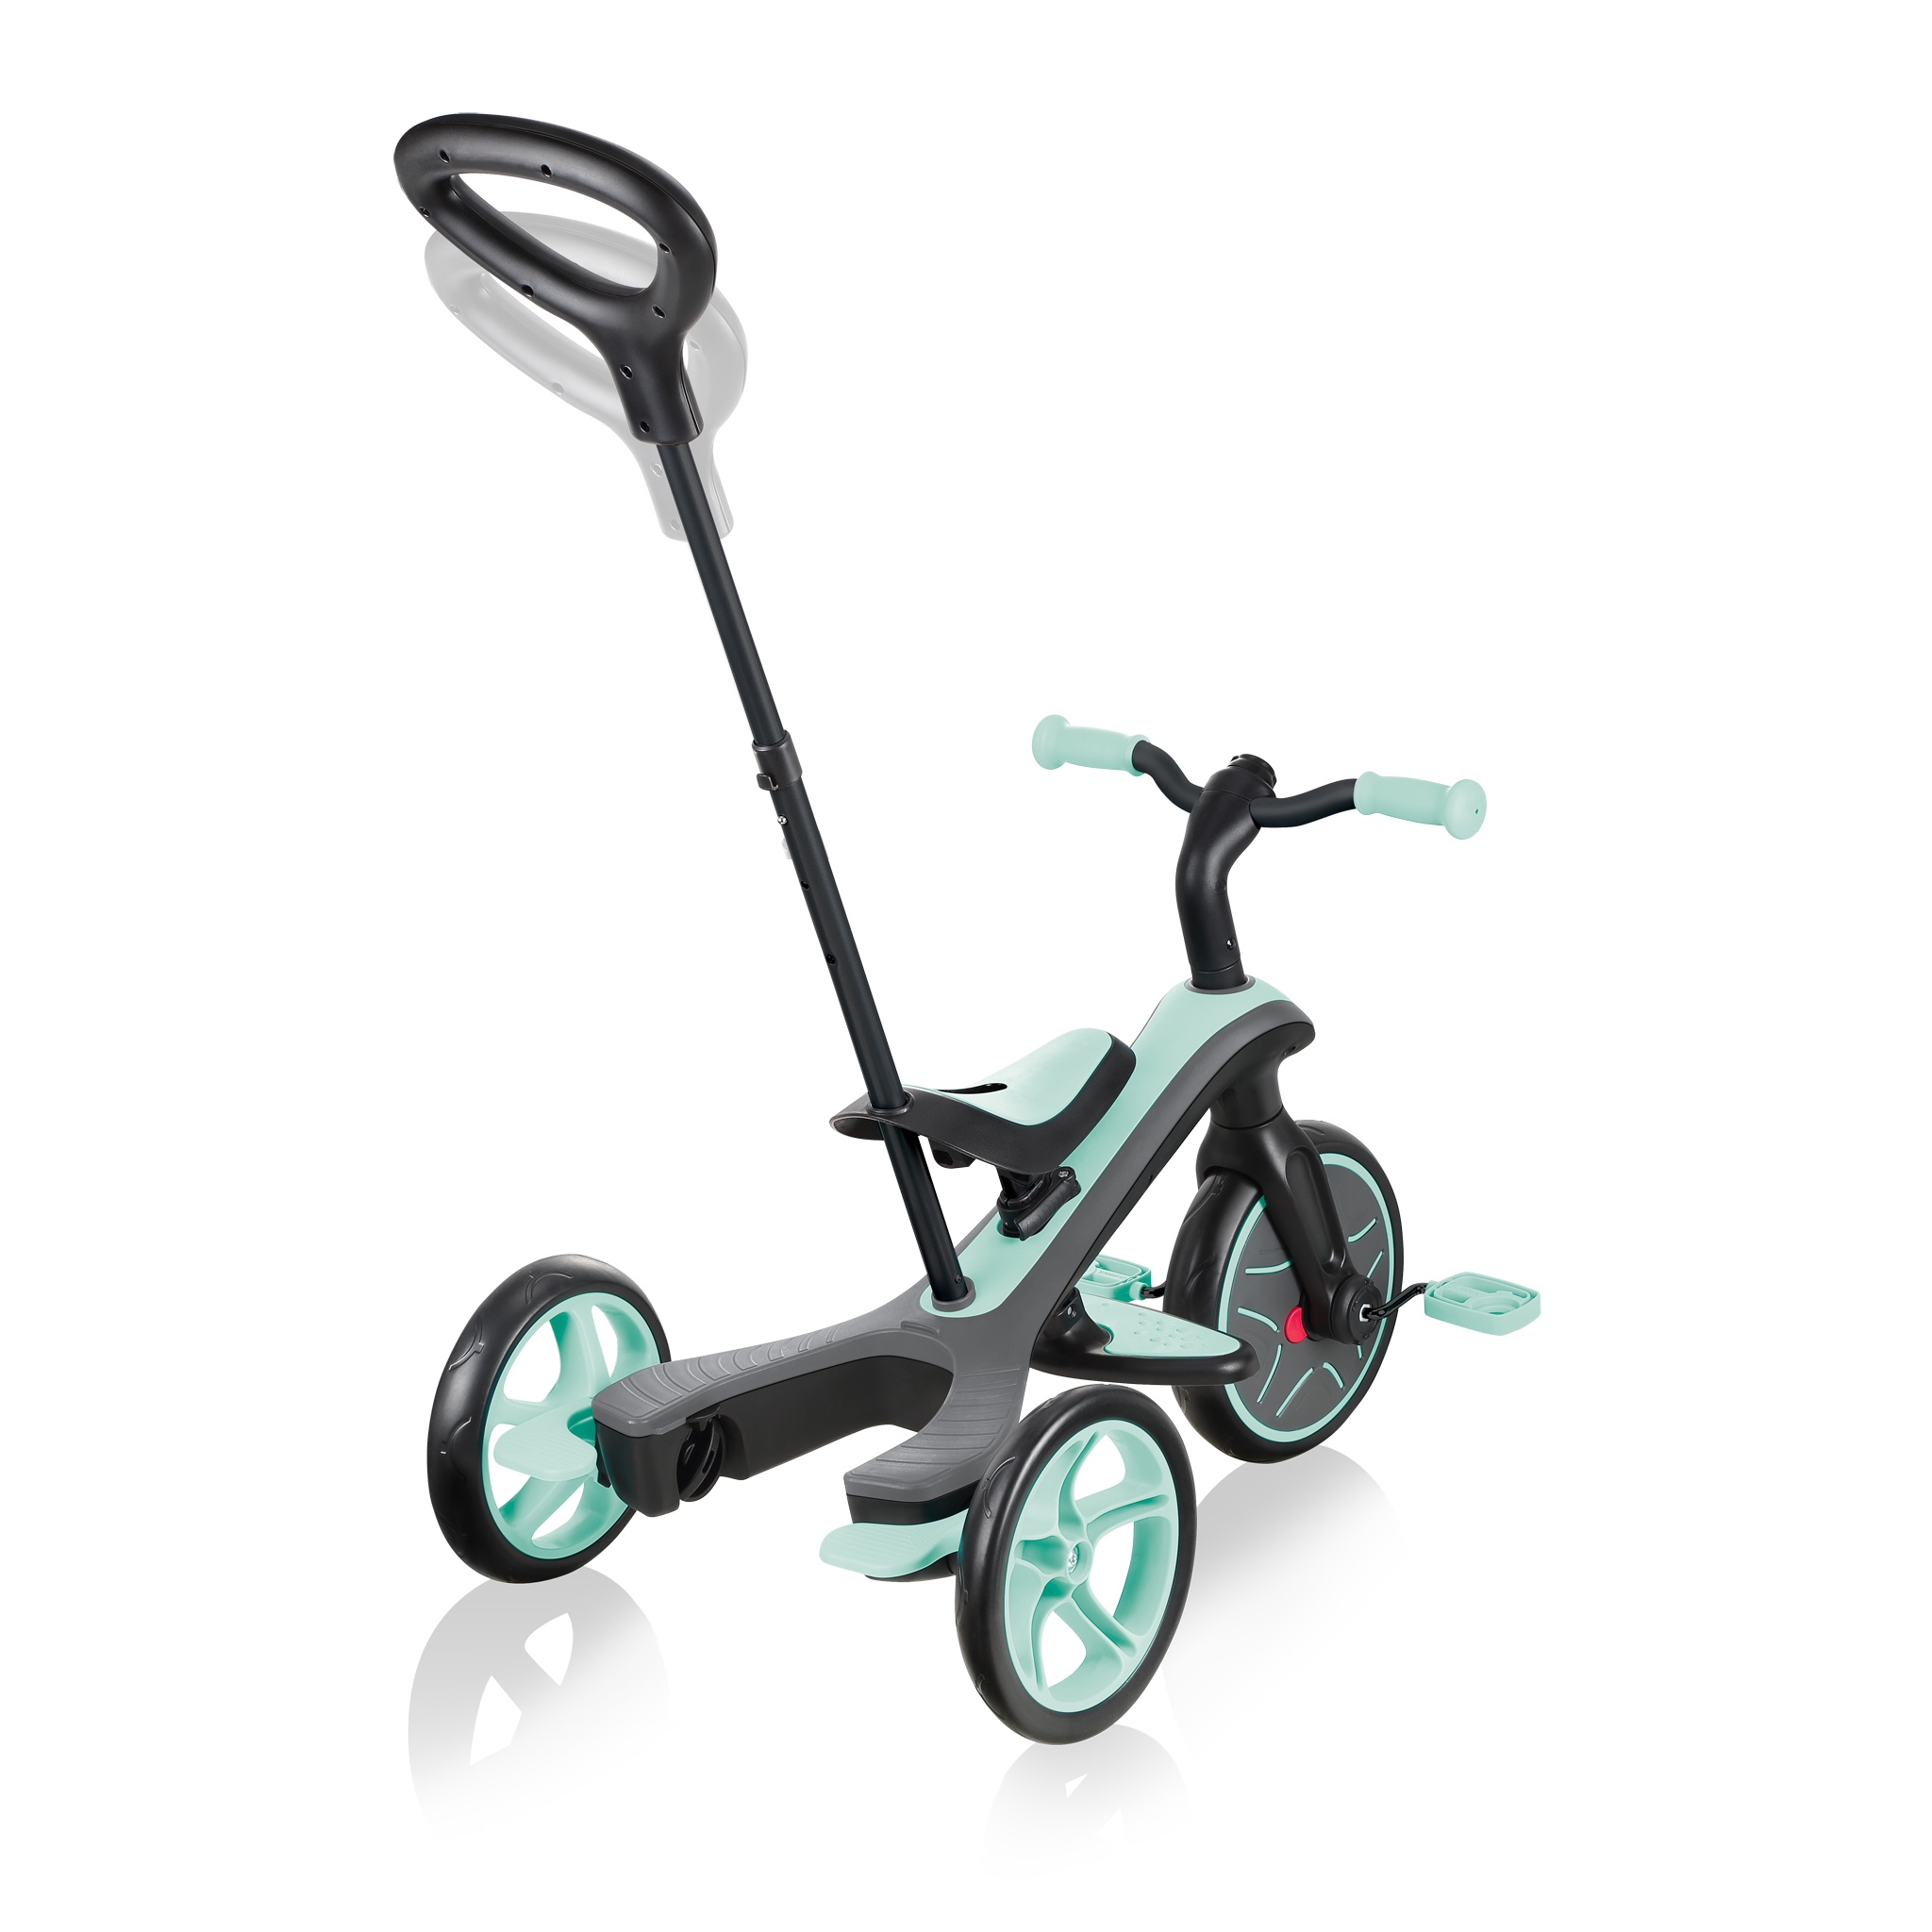 Globber-EXPLORER-TRIKE-4in1-all-in-one-baby-tricycle-and-kids-balance-bike-with-2-height-adjustable-parent-handle_mint